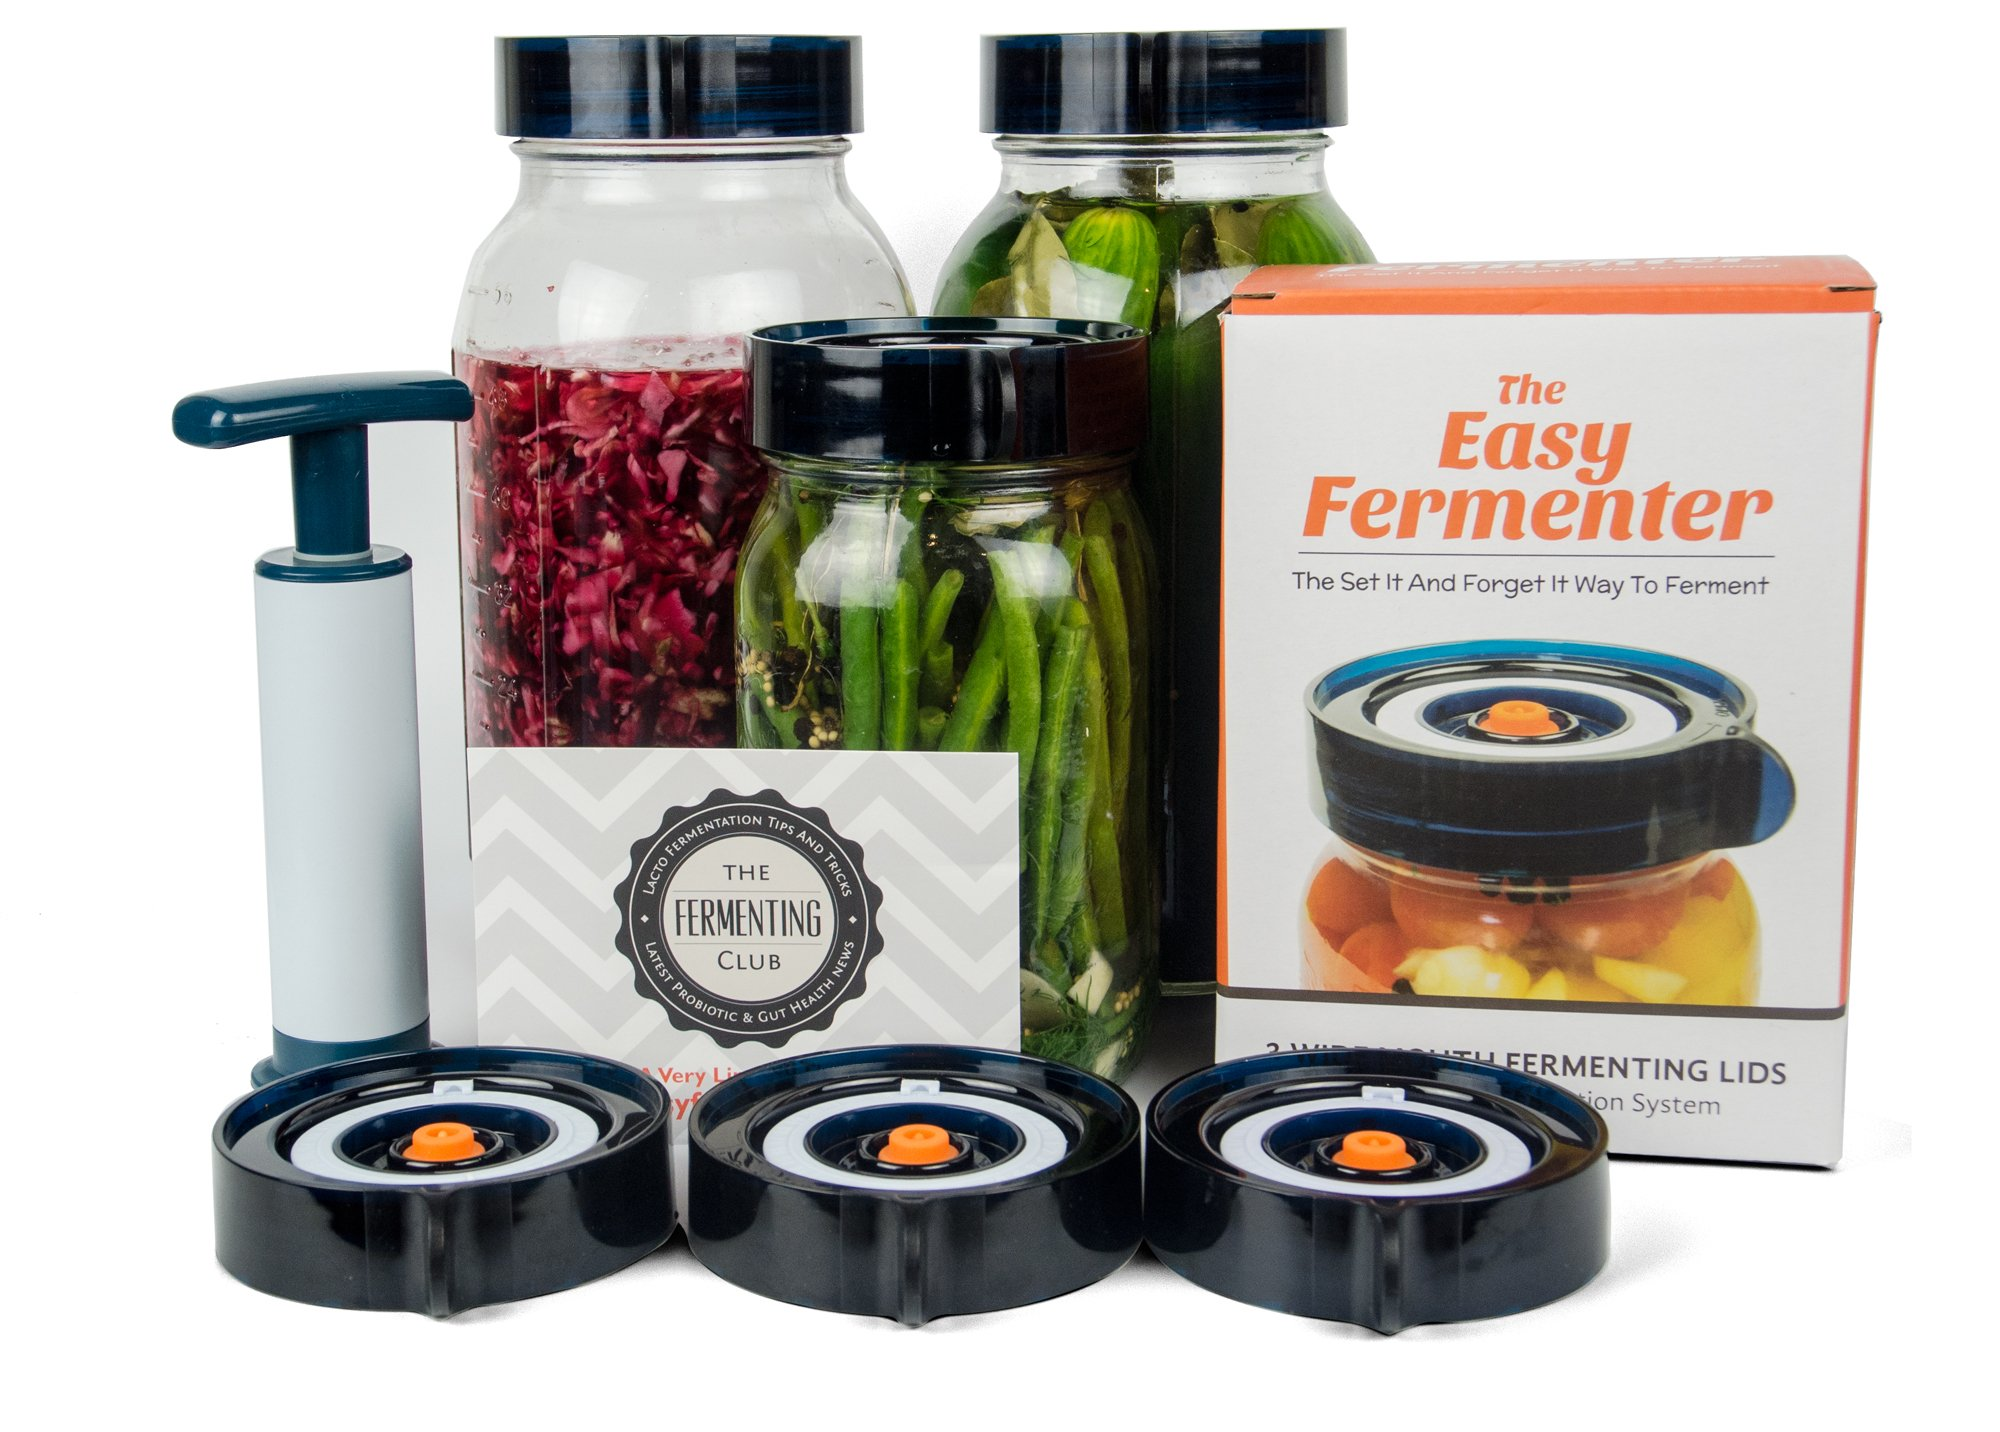 Easy Fermenter Wide Mouth Lid Kit: Simplified Fermenting In Jars Not Crock Pots! Make Sauerkraut, Kimchi, Pickles Or Any Fermented Probiotic Foods. 3 Lids, Extractor Pump & Recipe eBook - Mold Free by Nourished Essentials (Image #1)